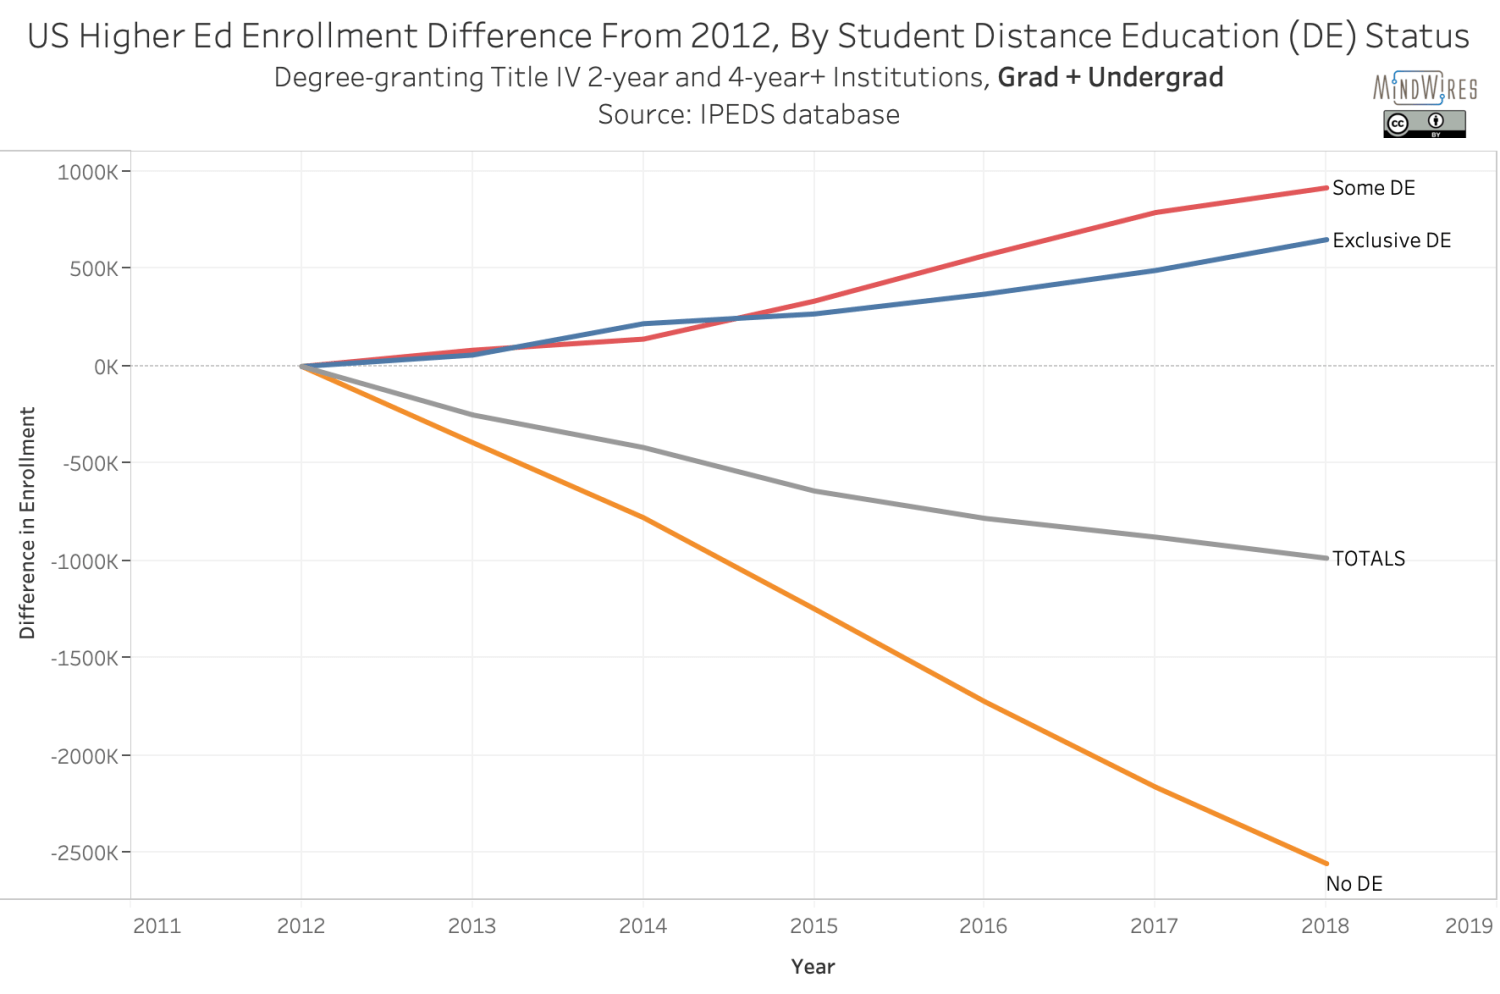 US Higher Ed Enrollment Difference From 2012, By Student Distance Education (DE) Status - grad and undergrad combined